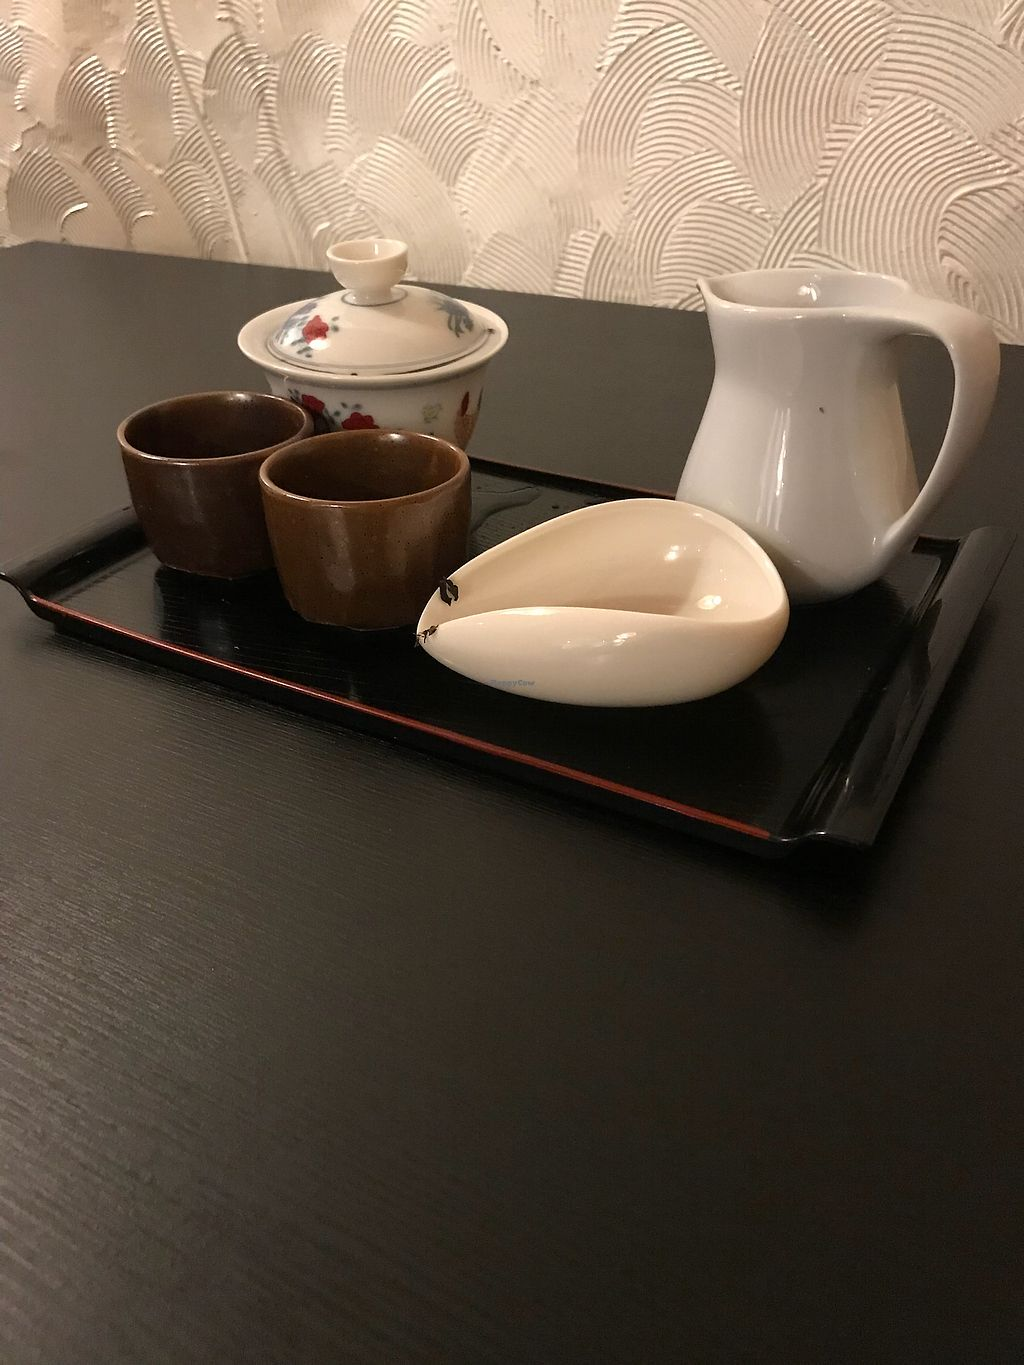 "Photo of Ichiza Kitchen & Tea House  by <a href=""/members/profile/NSmoke"">NSmoke</a> <br/>Tea service  <br/> February 6, 2018  - <a href='/contact/abuse/image/95823/355524'>Report</a>"